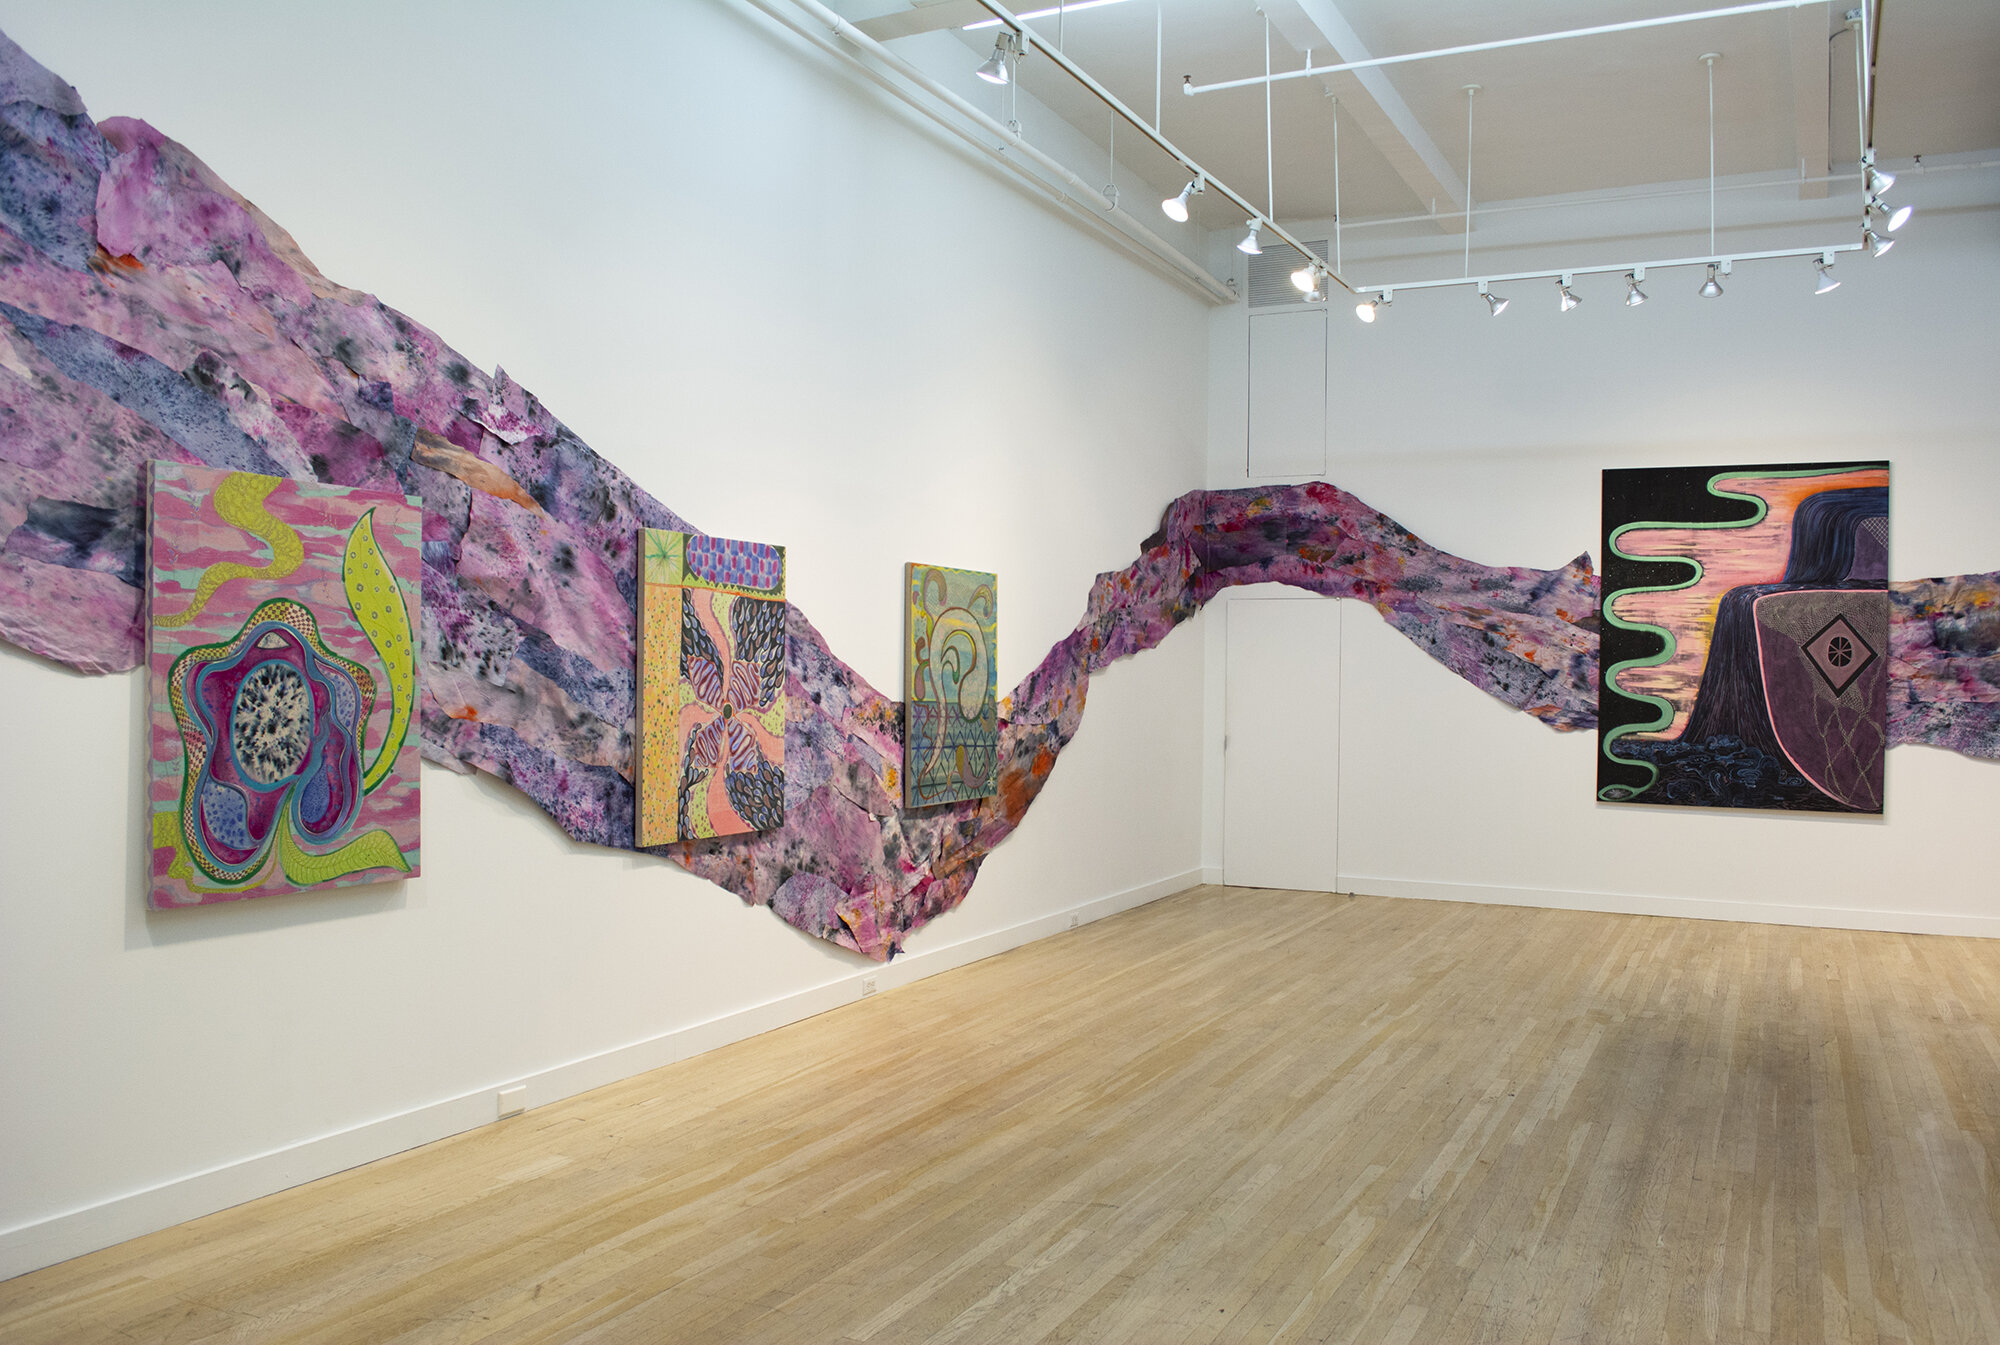 Installation view of Natessa Amin:  Hyphen .  [Image description: Installation view of two gallery walls with a curved strip of hand-dyed and layered newsprint, mostly pink in color with orange, red, purple, and gray hues mixed in throughout. On top of the newsprint is a row of three paintings on the left and one painting on the right.]